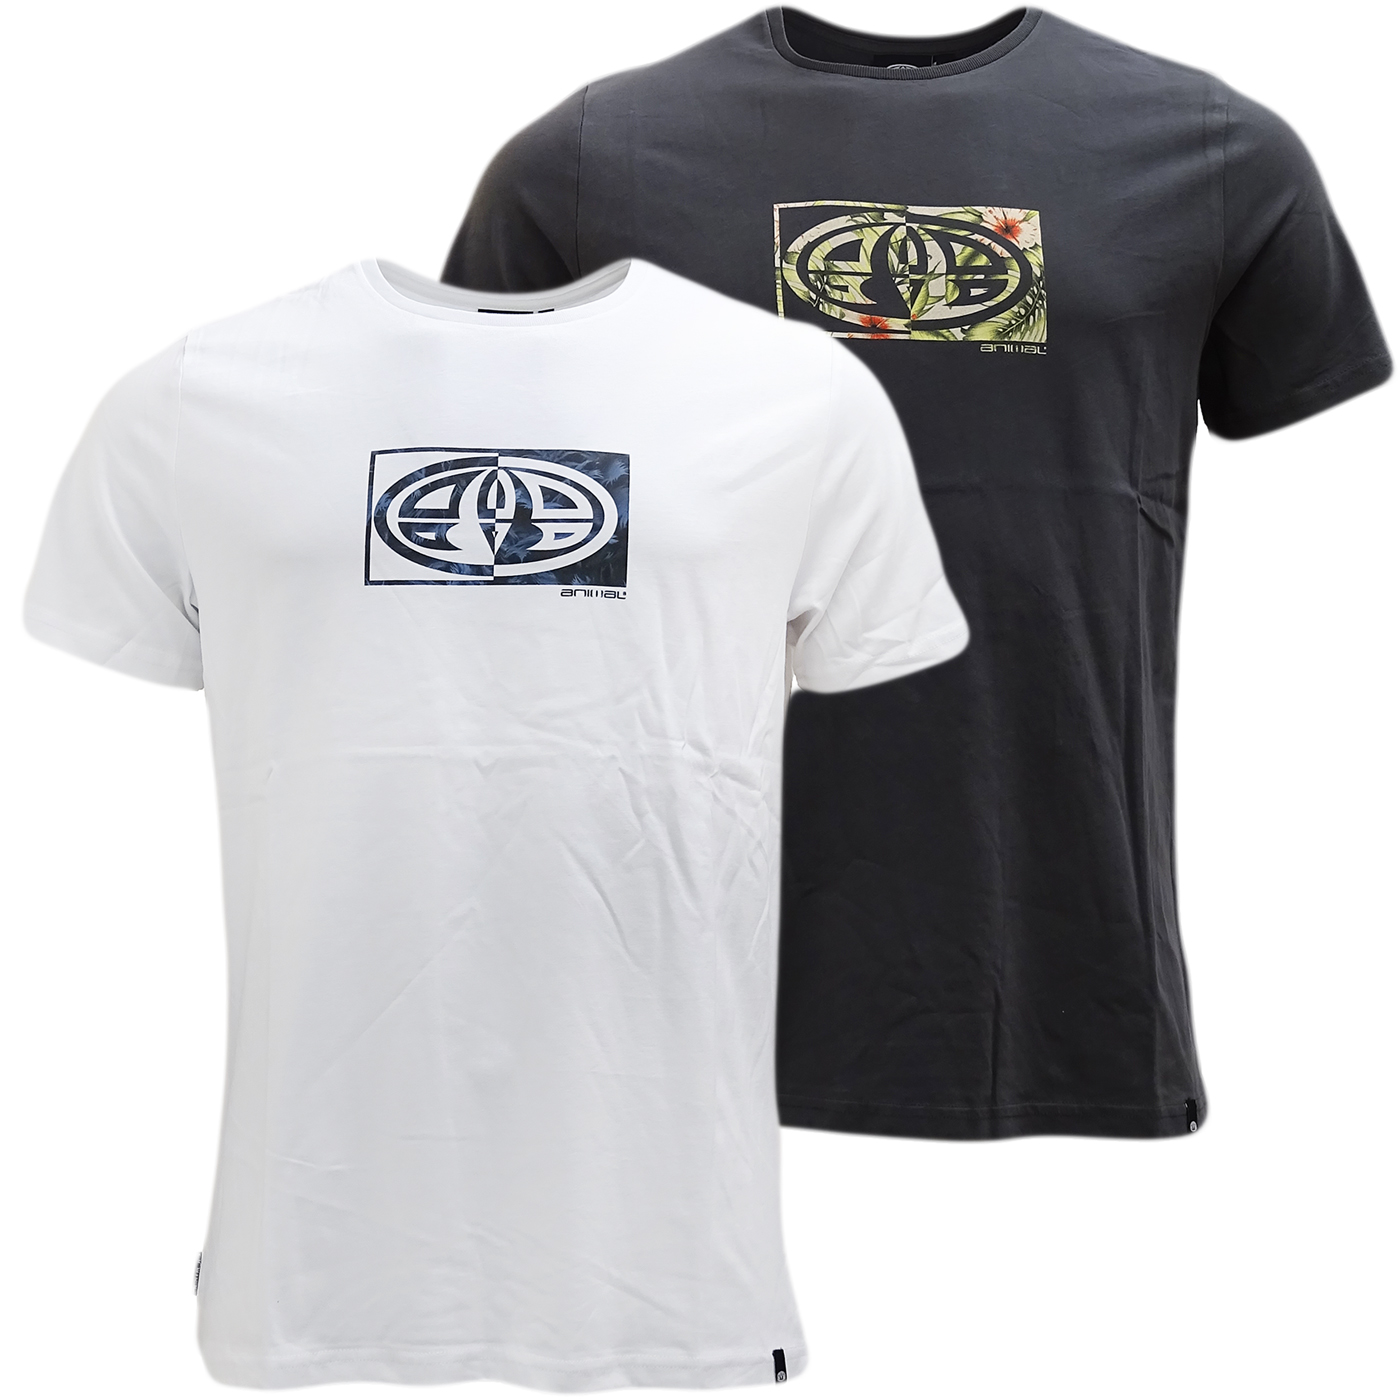 Animal Logo Front And Back T-Shirt - L029-L63